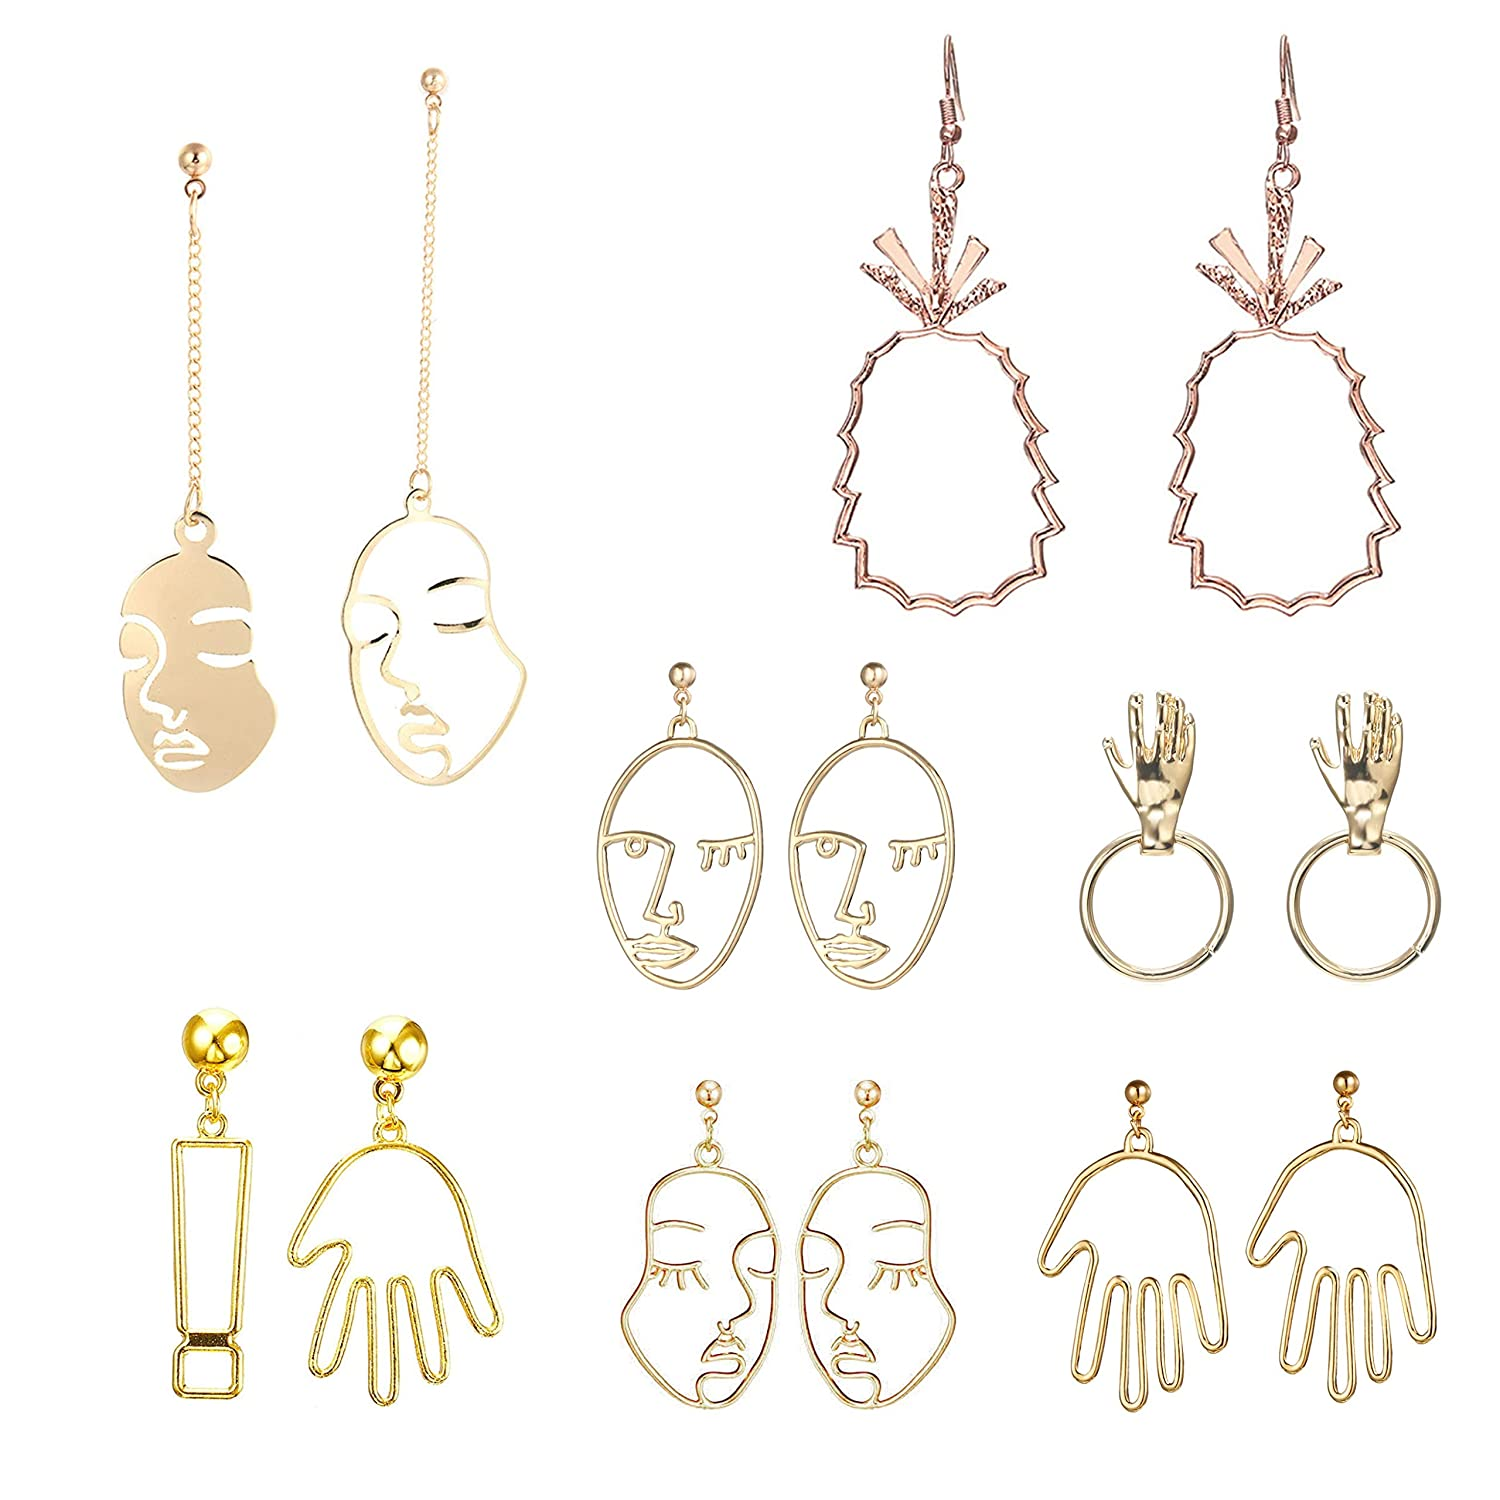 Deroaty Human Face Dangle Set of 7 Pairs Drop Earrings Geometric Vintage Dangling Human Hand Earrings Nice Gifts for Women Lady Teens Girls Brand 7 Pairs//Set